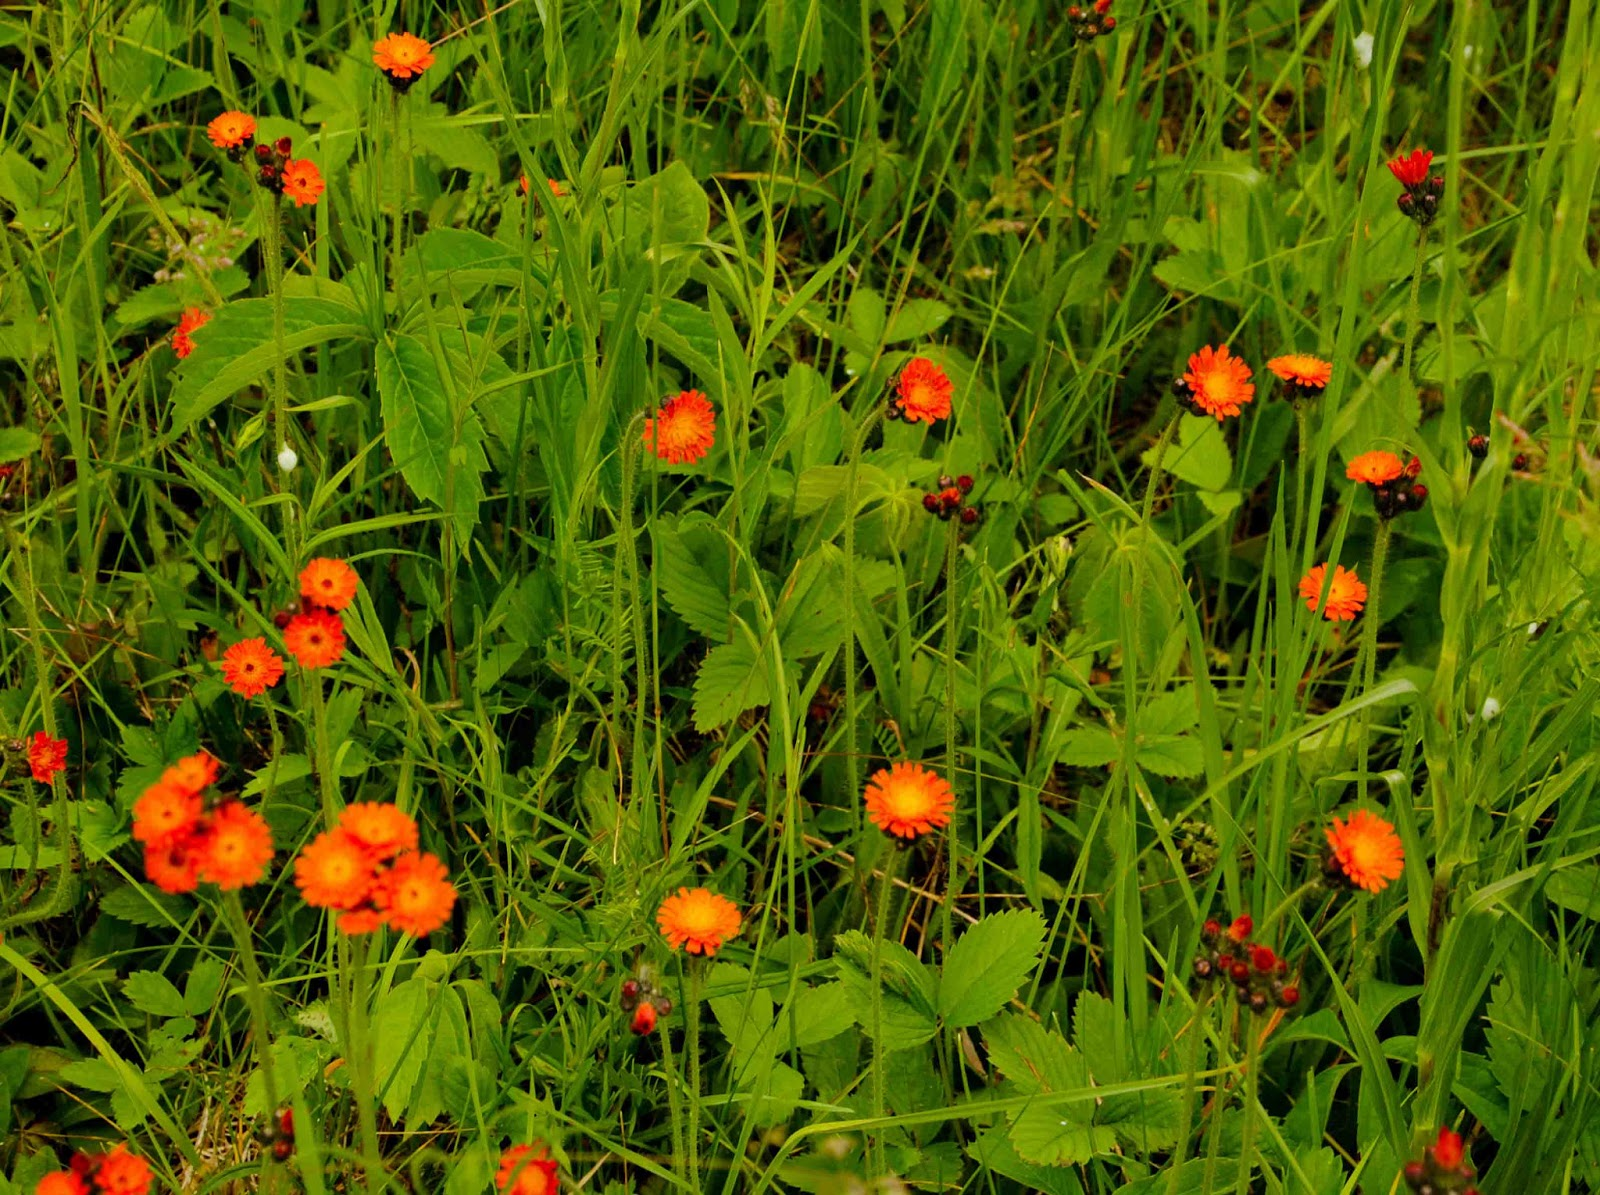 It Provides Bright Red Orange Flashes Among The Dominant Yellow Weeds Do I Really Dare Call These Wildflowers Rather Than